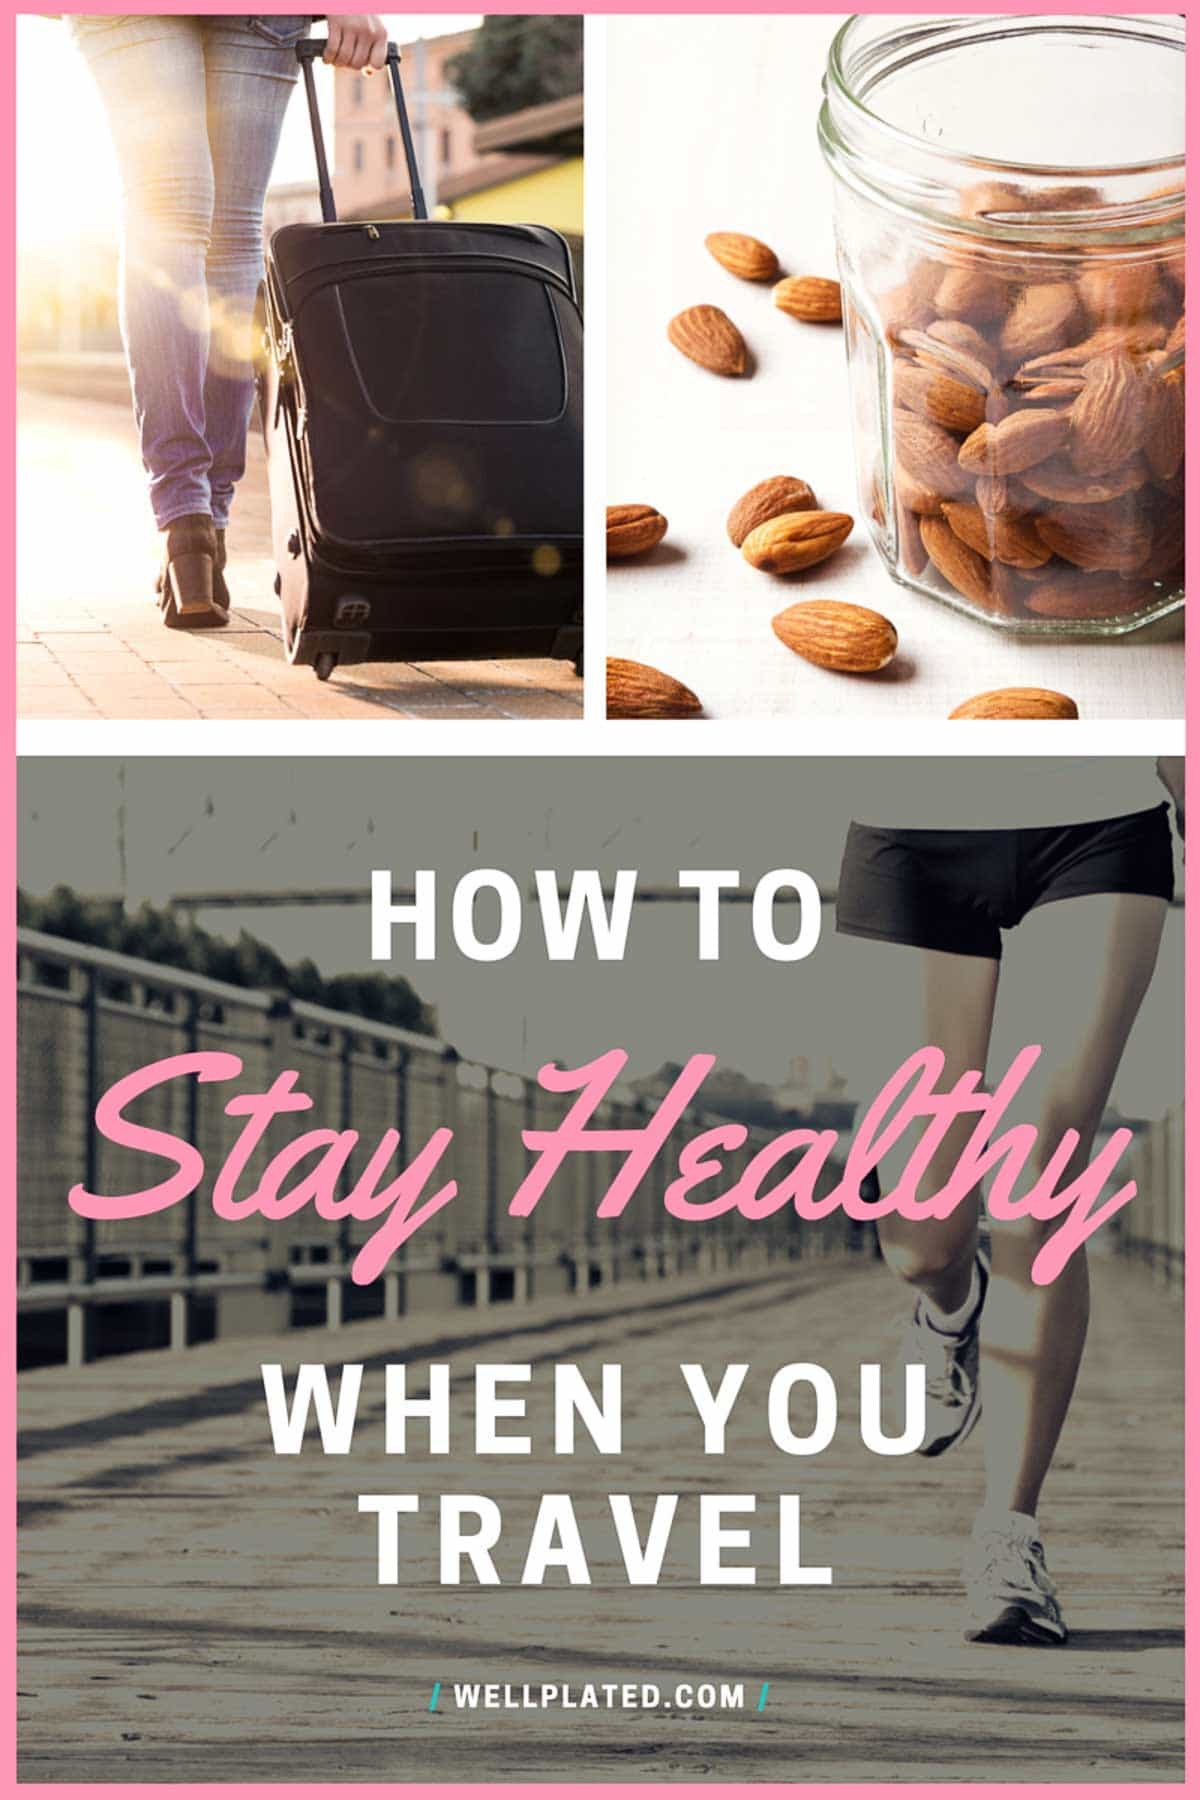 Whether You Are Traveling For Work Or Going On Vacation, These Healthy  Travel Tips Will